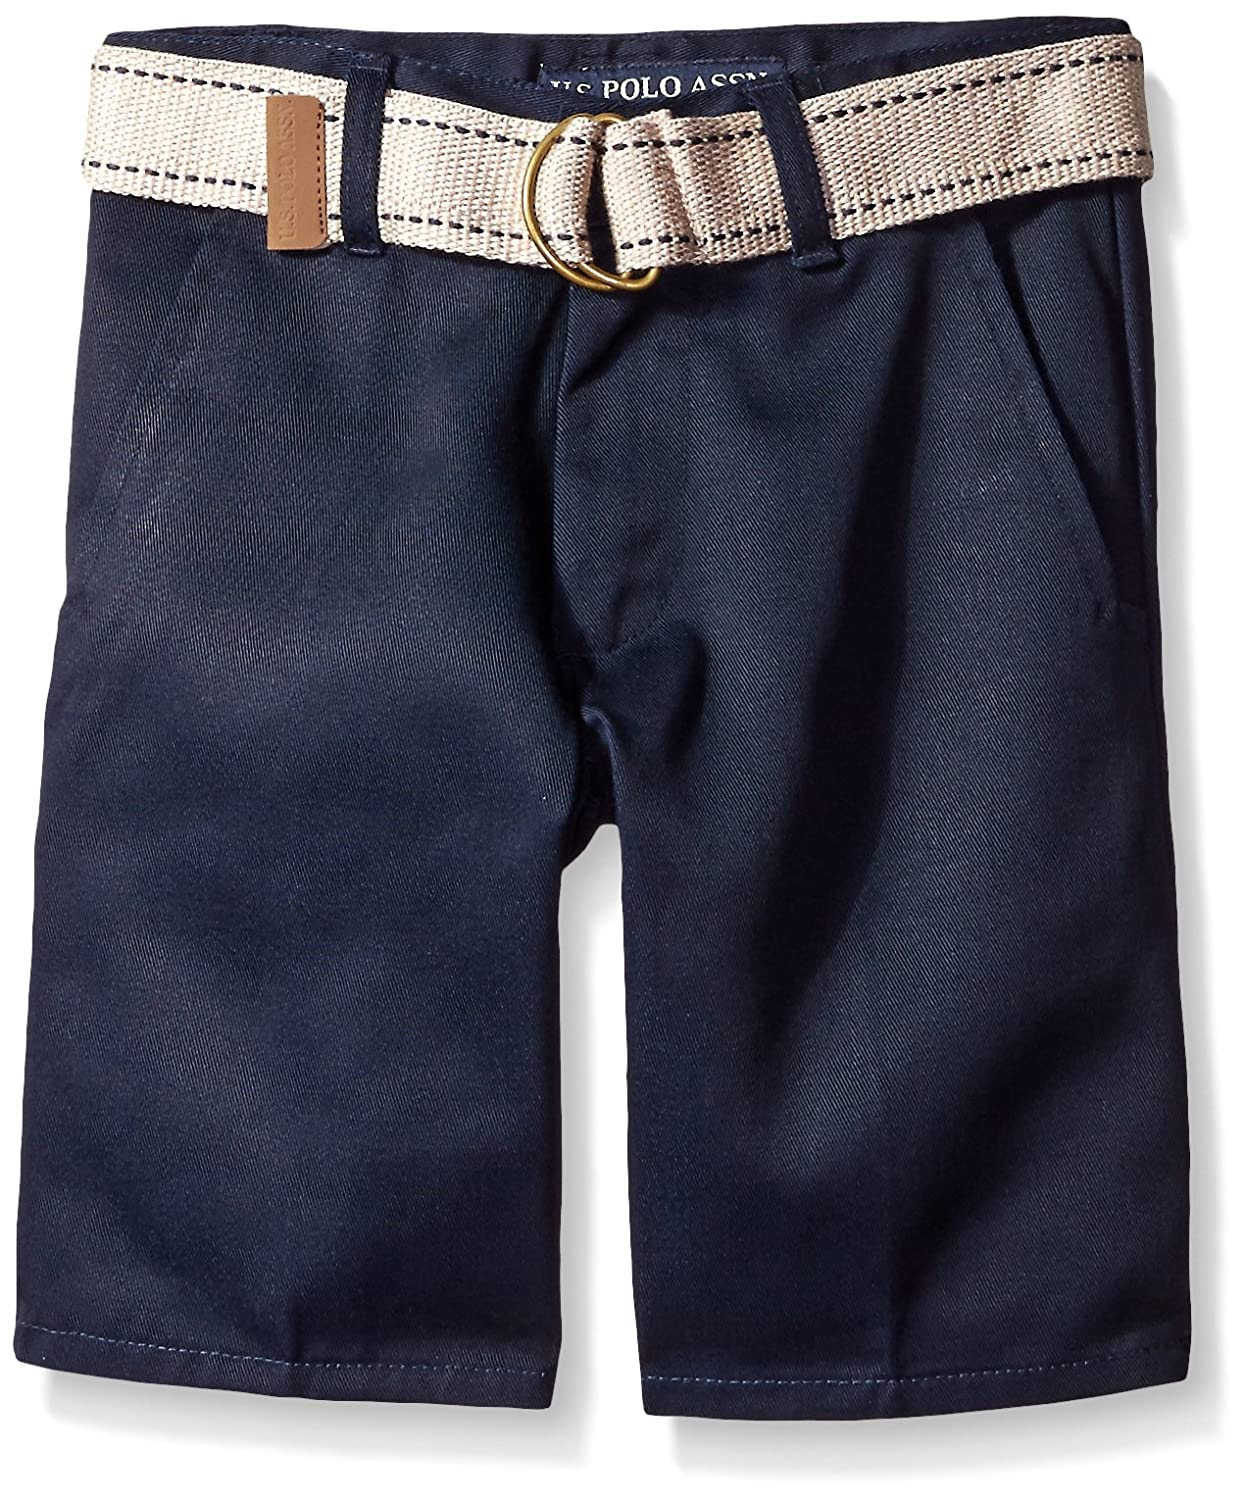 U.S. Polo Assn. Big Boys' Twill Short (More Styles Available)